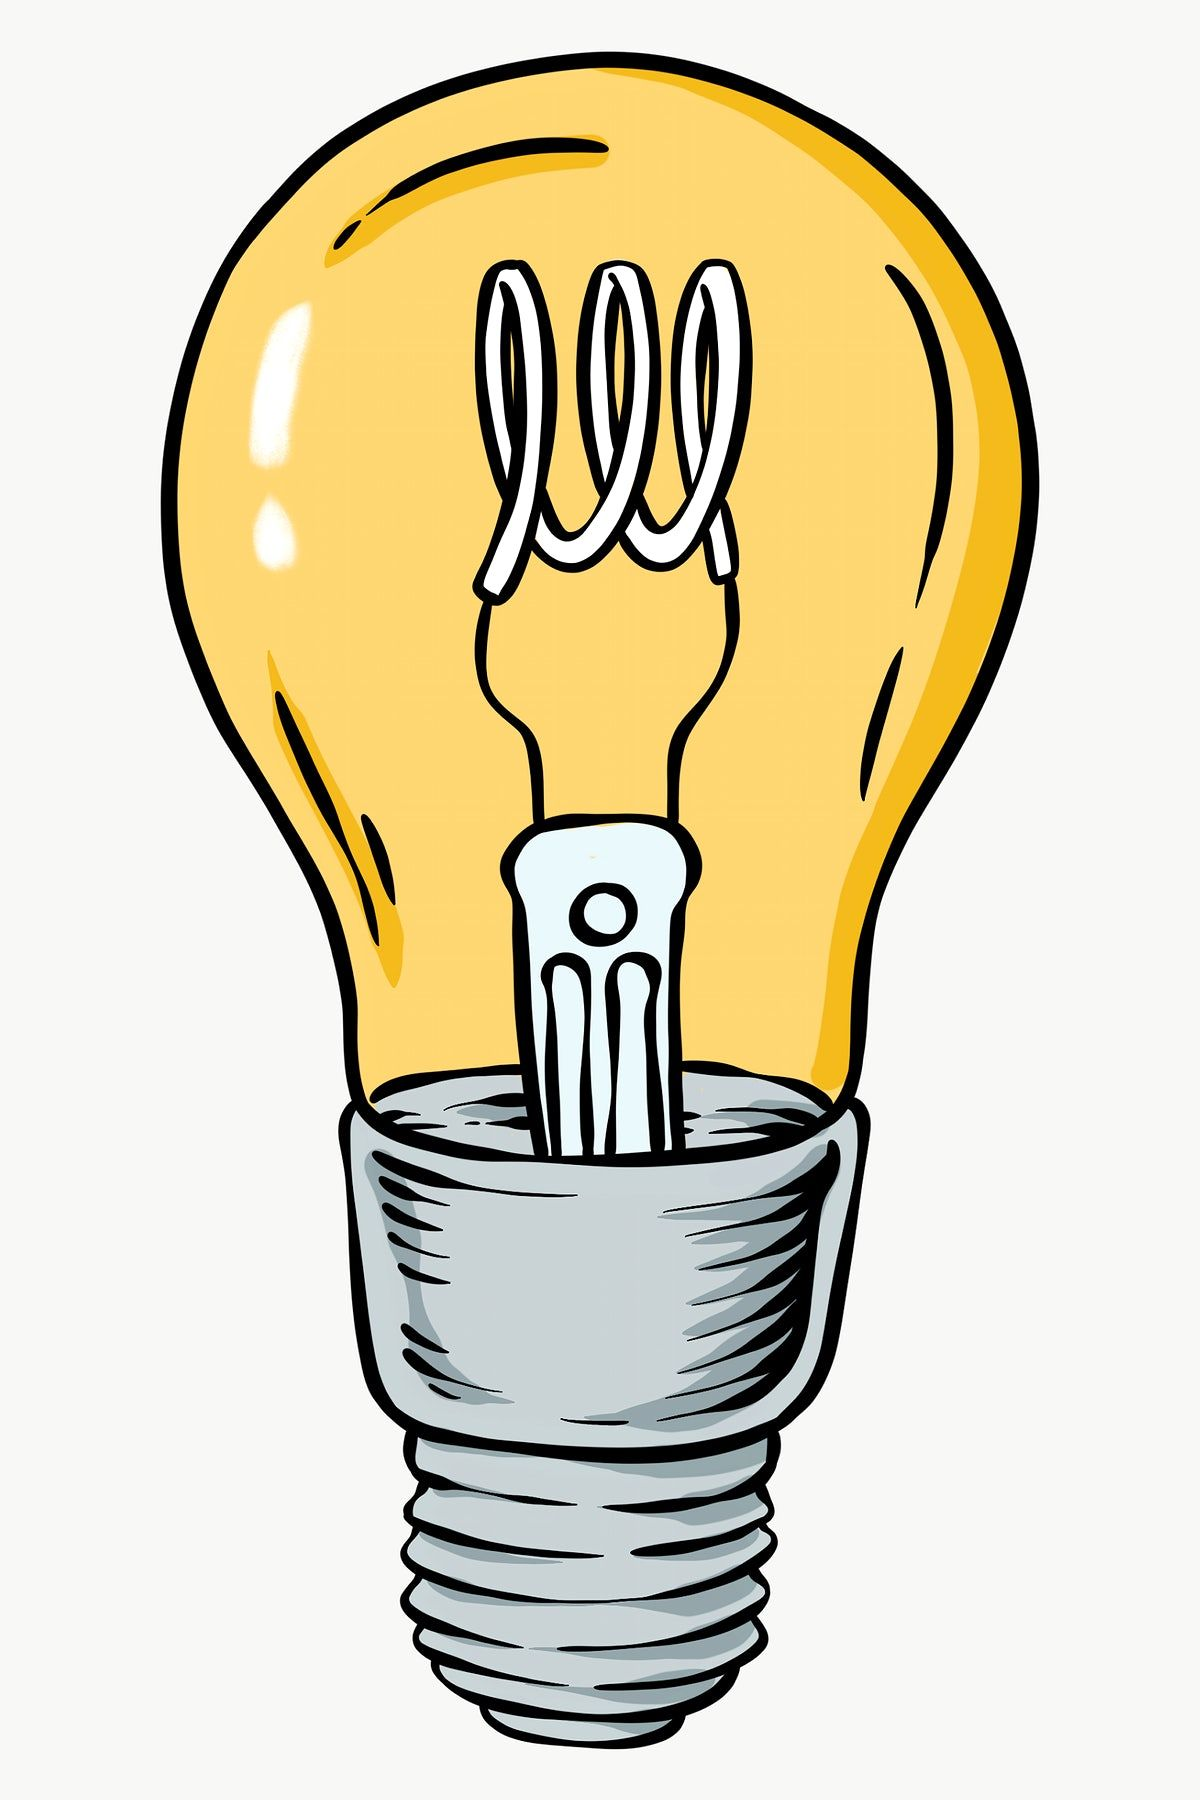 Hand Drawn Light Bulb Design Element Free Image By Rawpixel Com Noon In 2020 Light Bulb Design Design Element How To Draw Hands